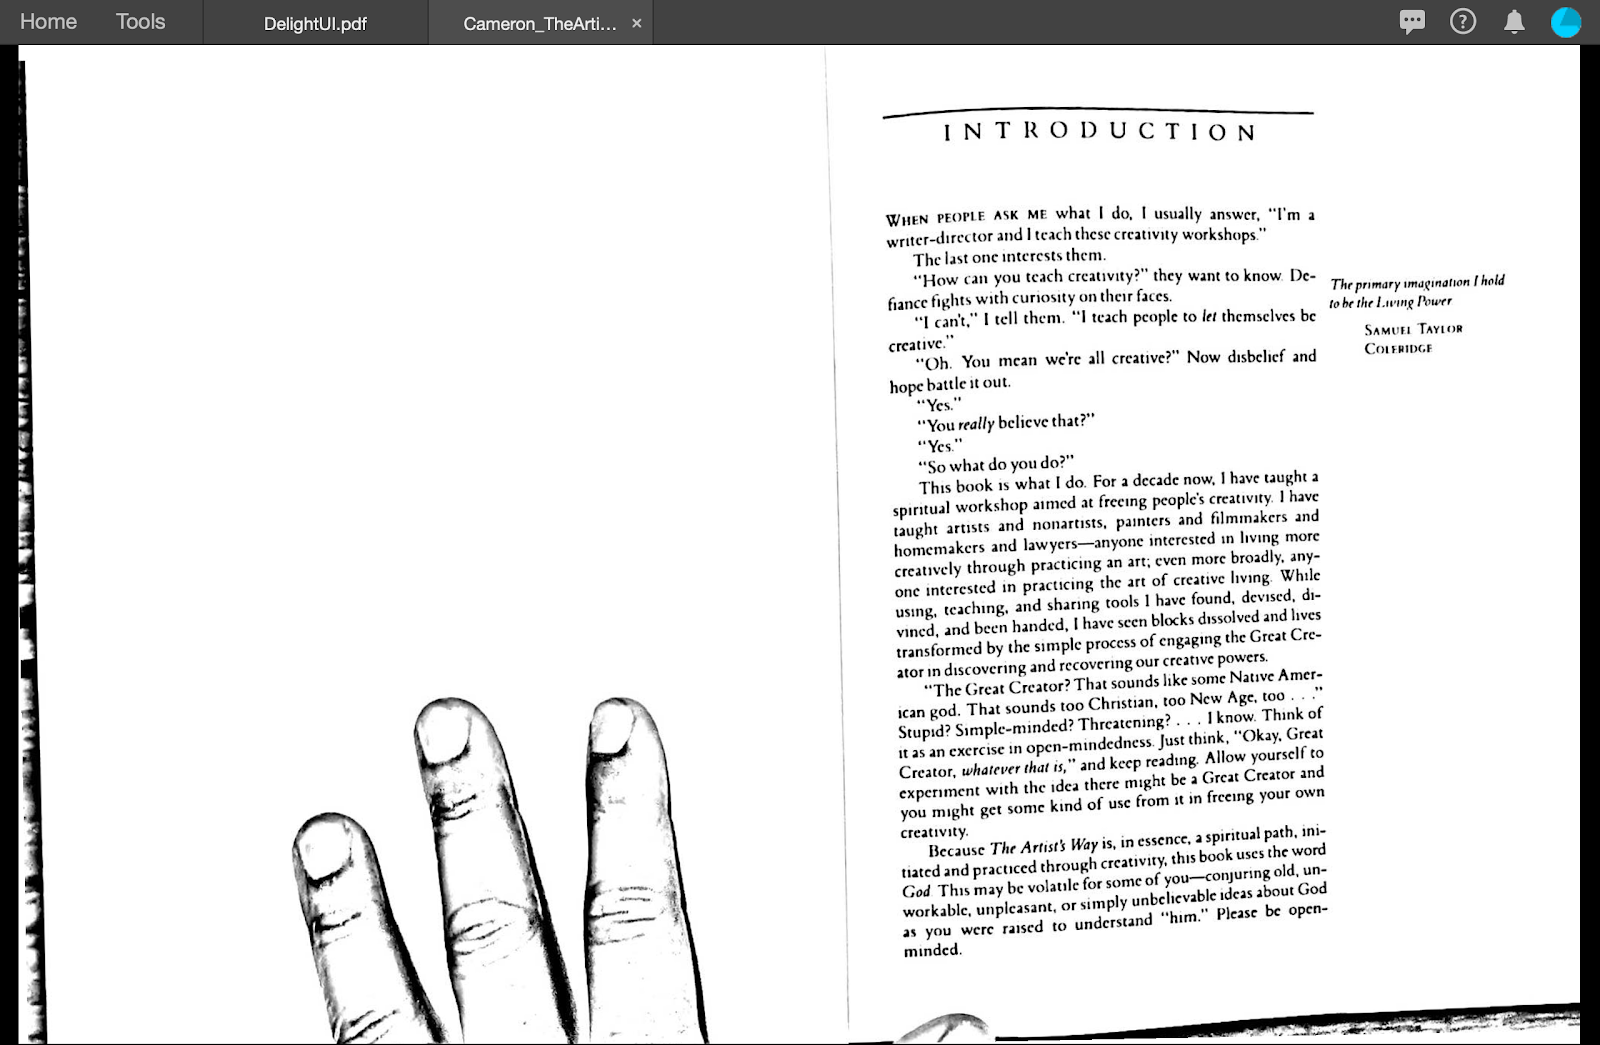 High contrast scan of book spread with three fingers of a hand on the left hand page